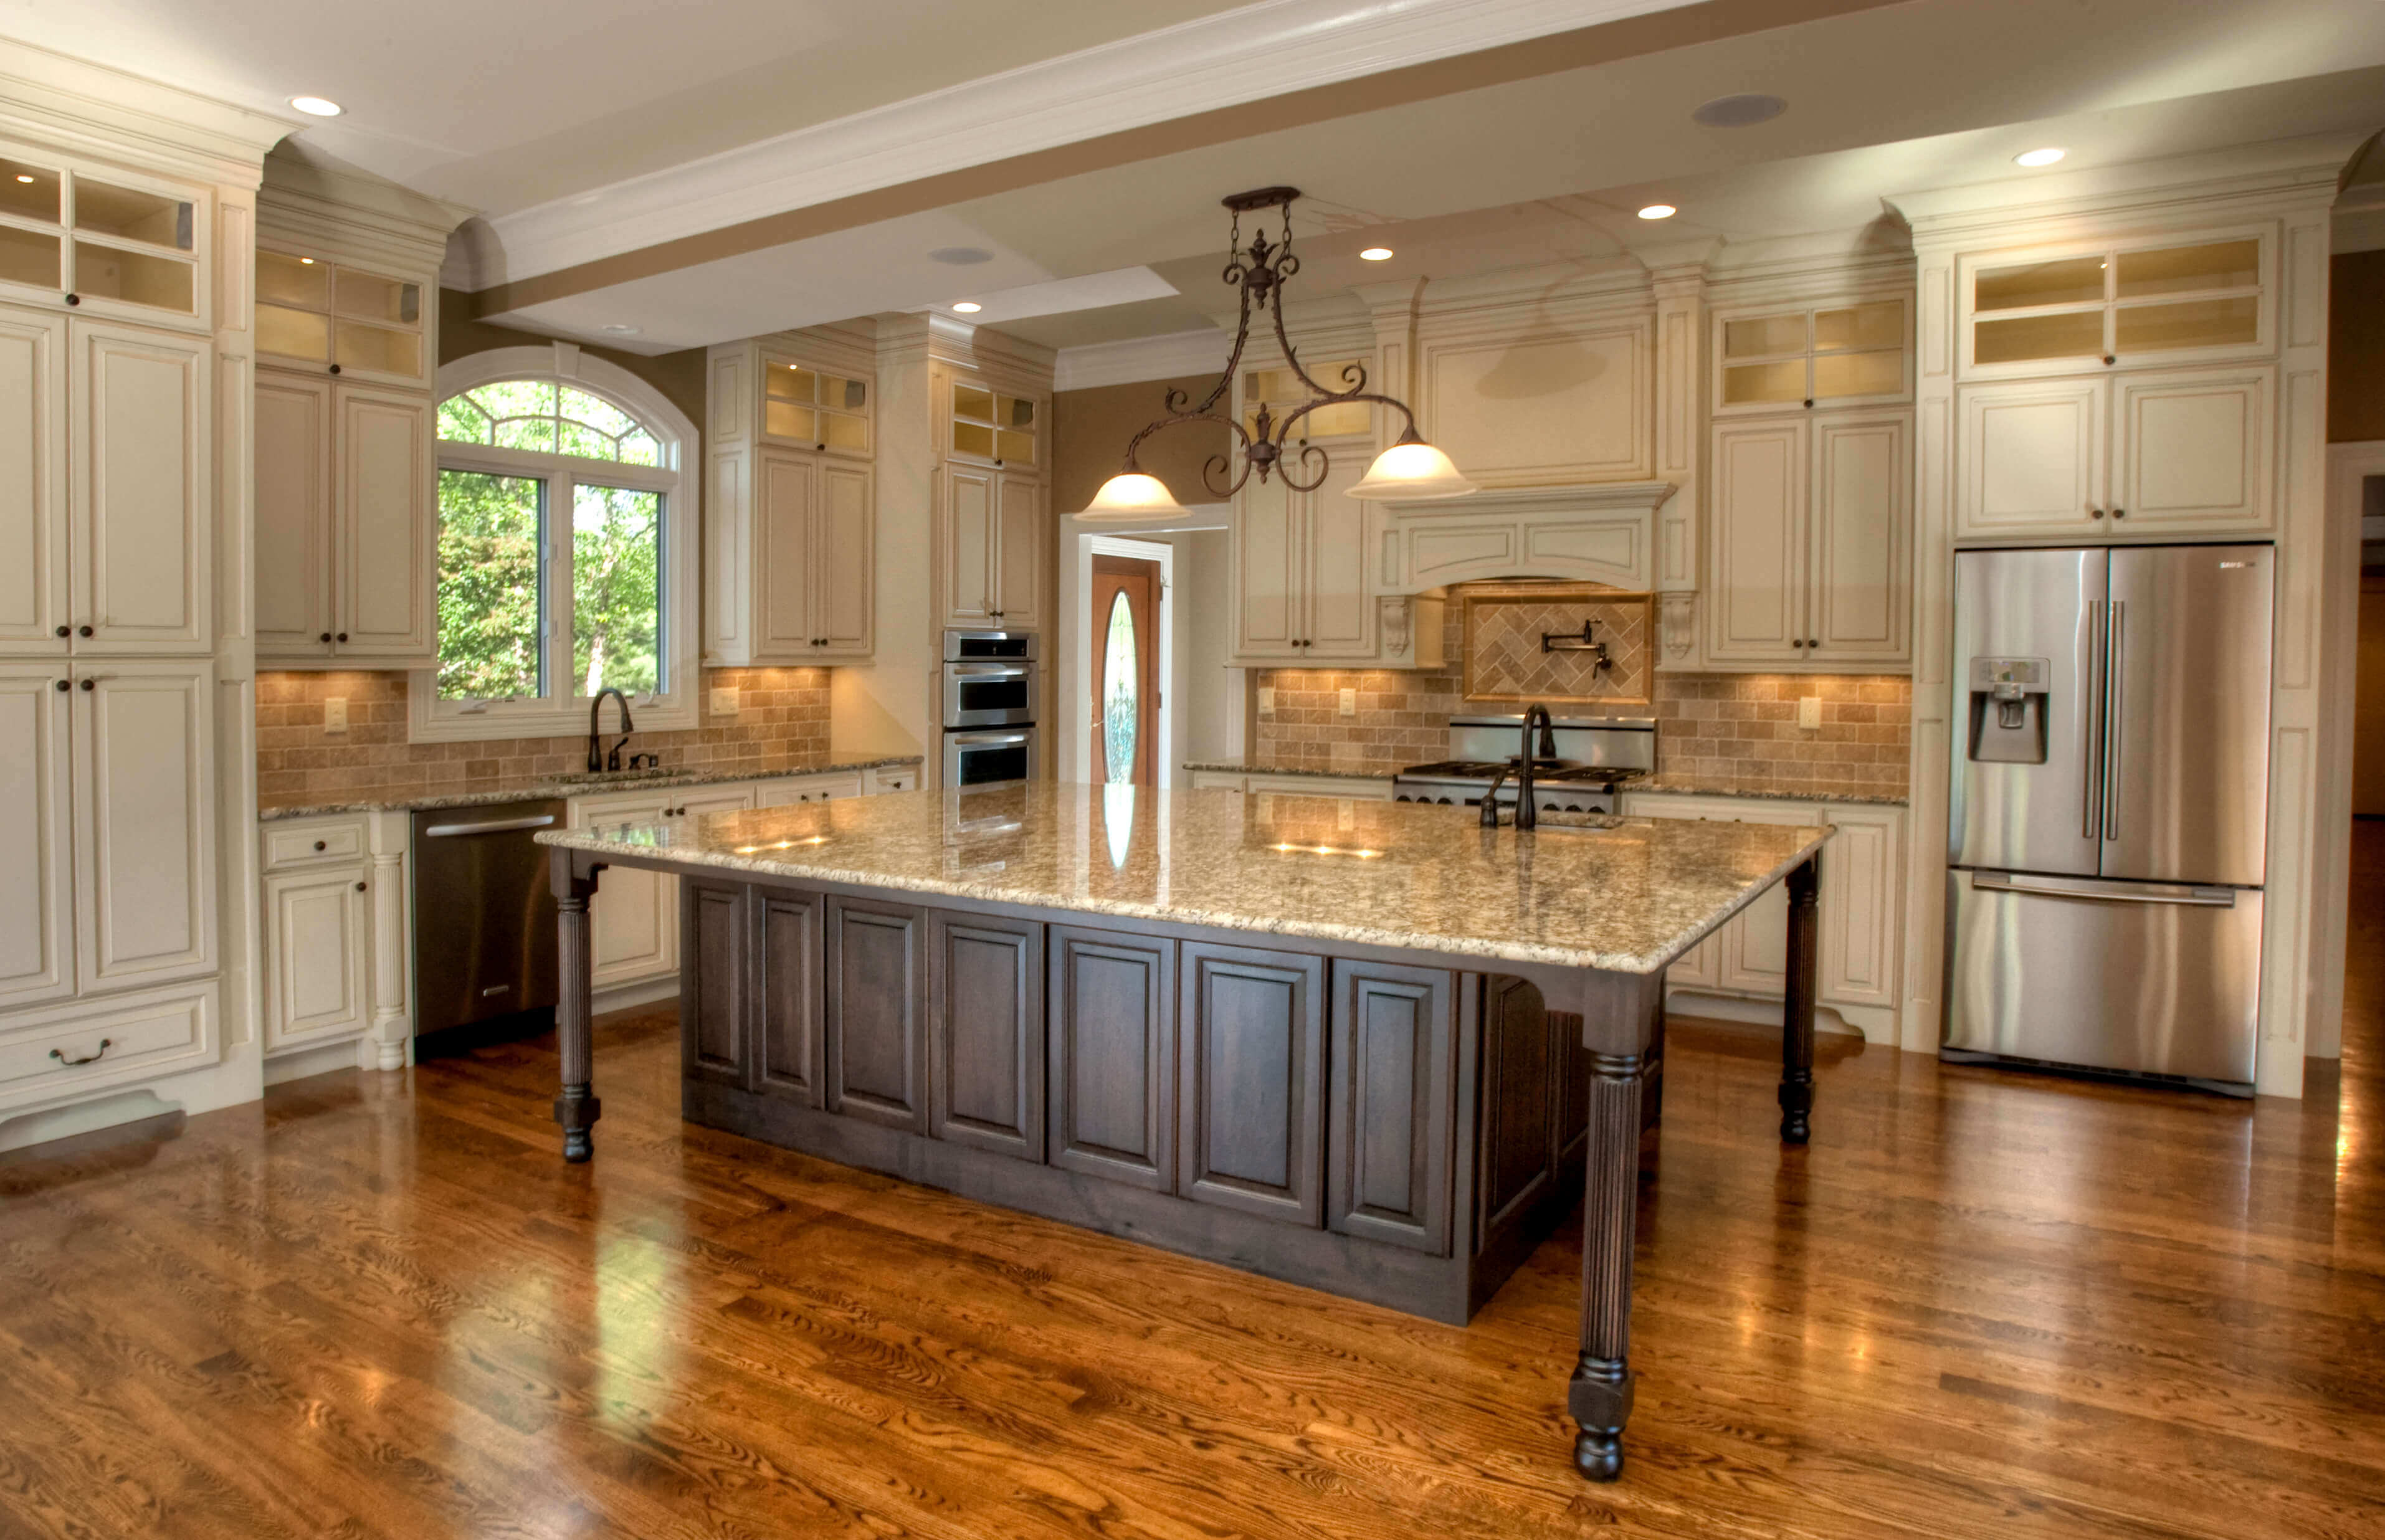 kitchen with islands 78 great looking modern kitchen gallery sinks islands appliances lights backsplashes 3712